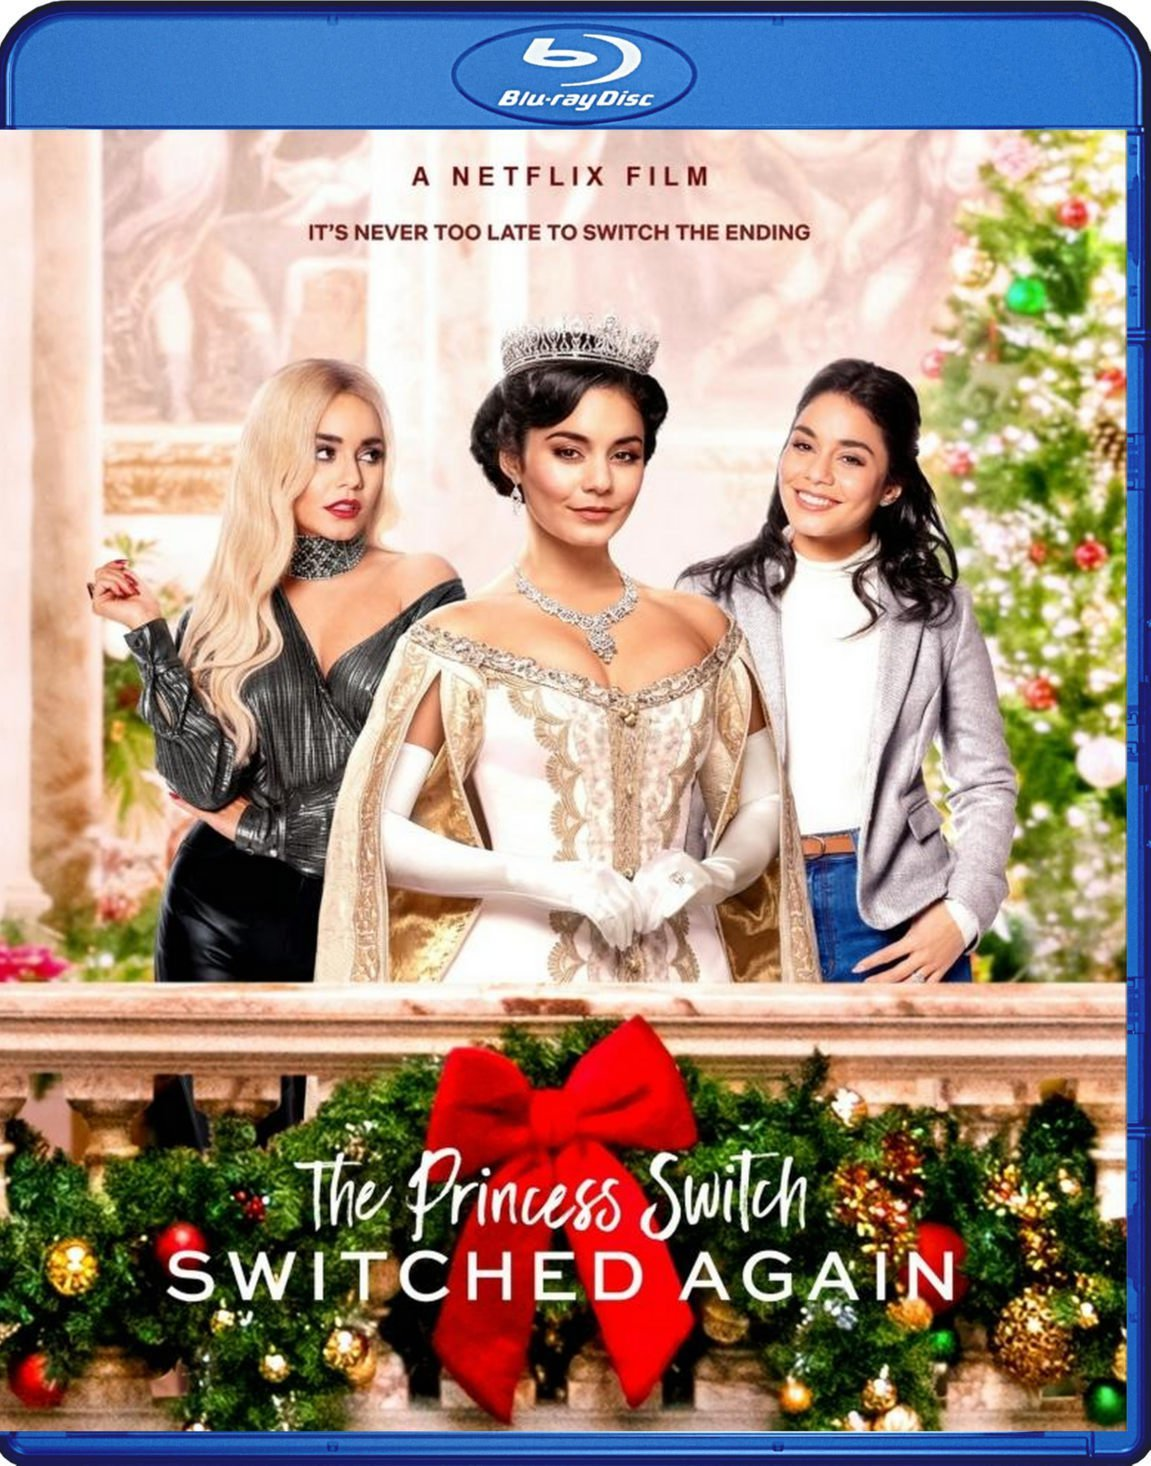 Princess Switch, Switched Again - 2020 - Blu Ray